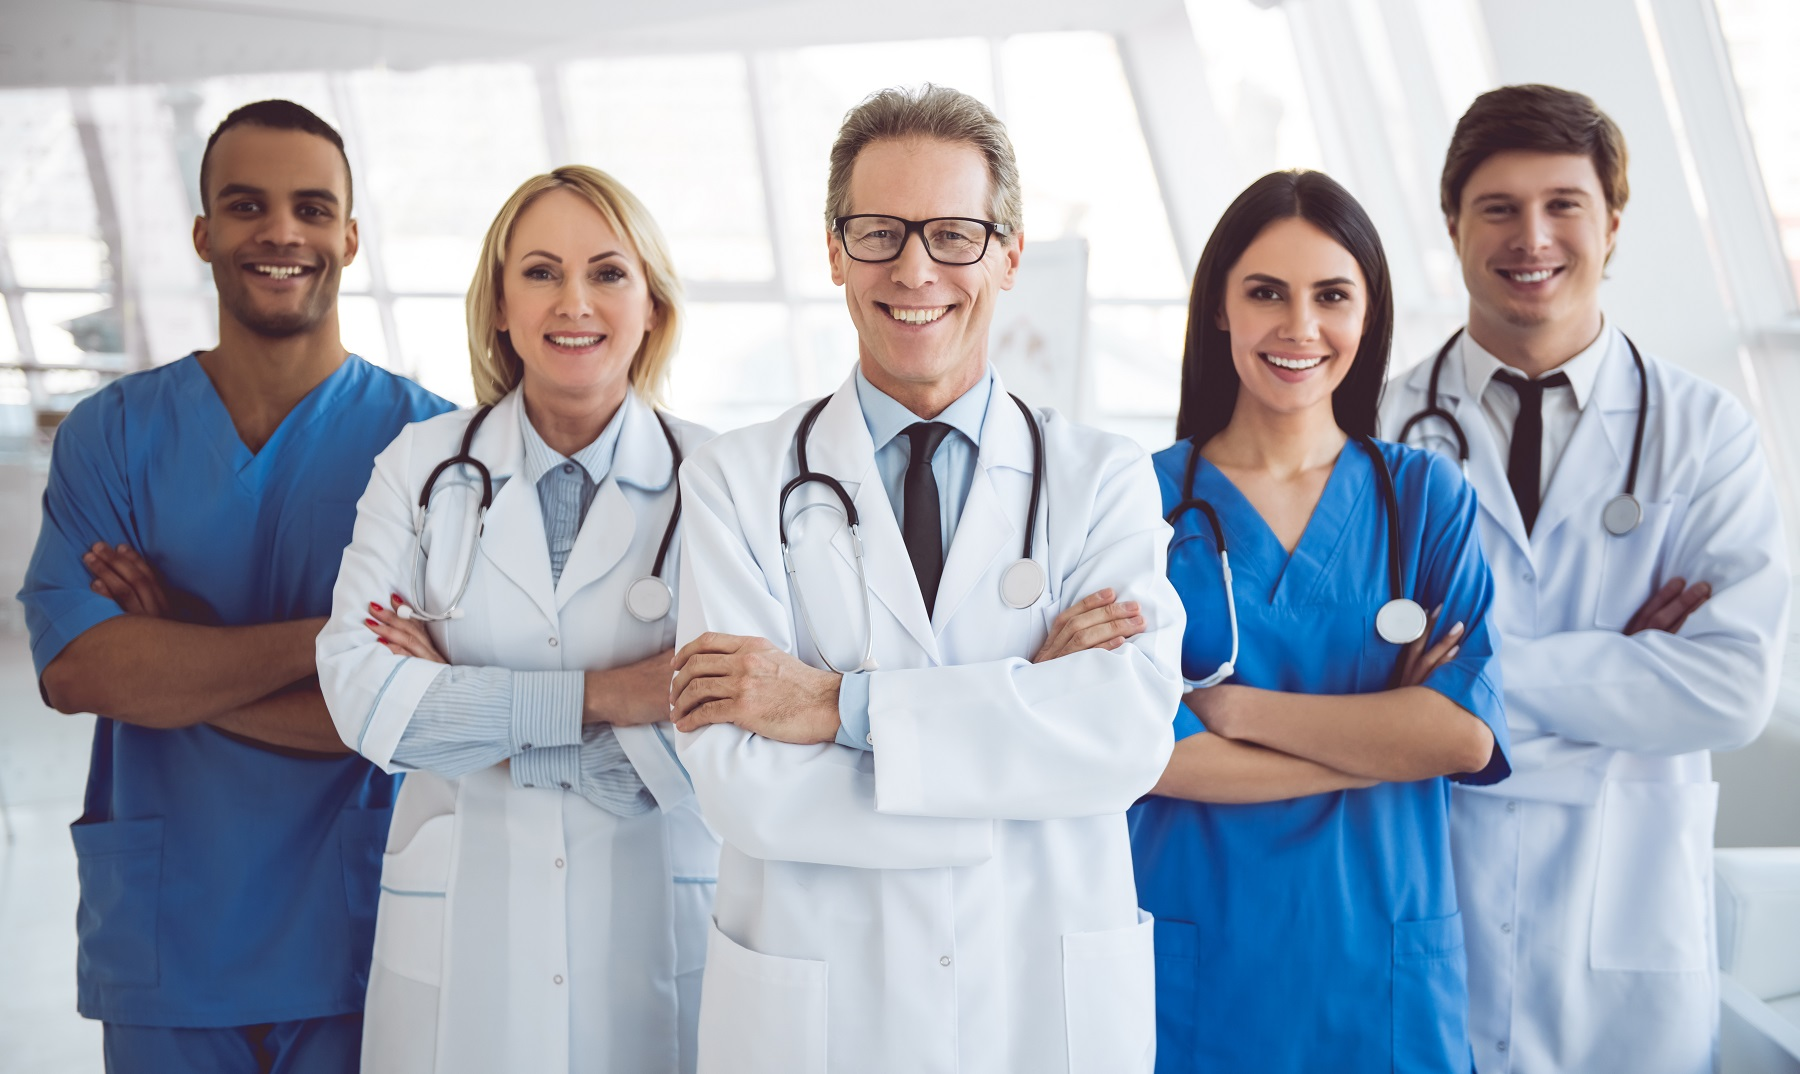 Taking care of your medical needs